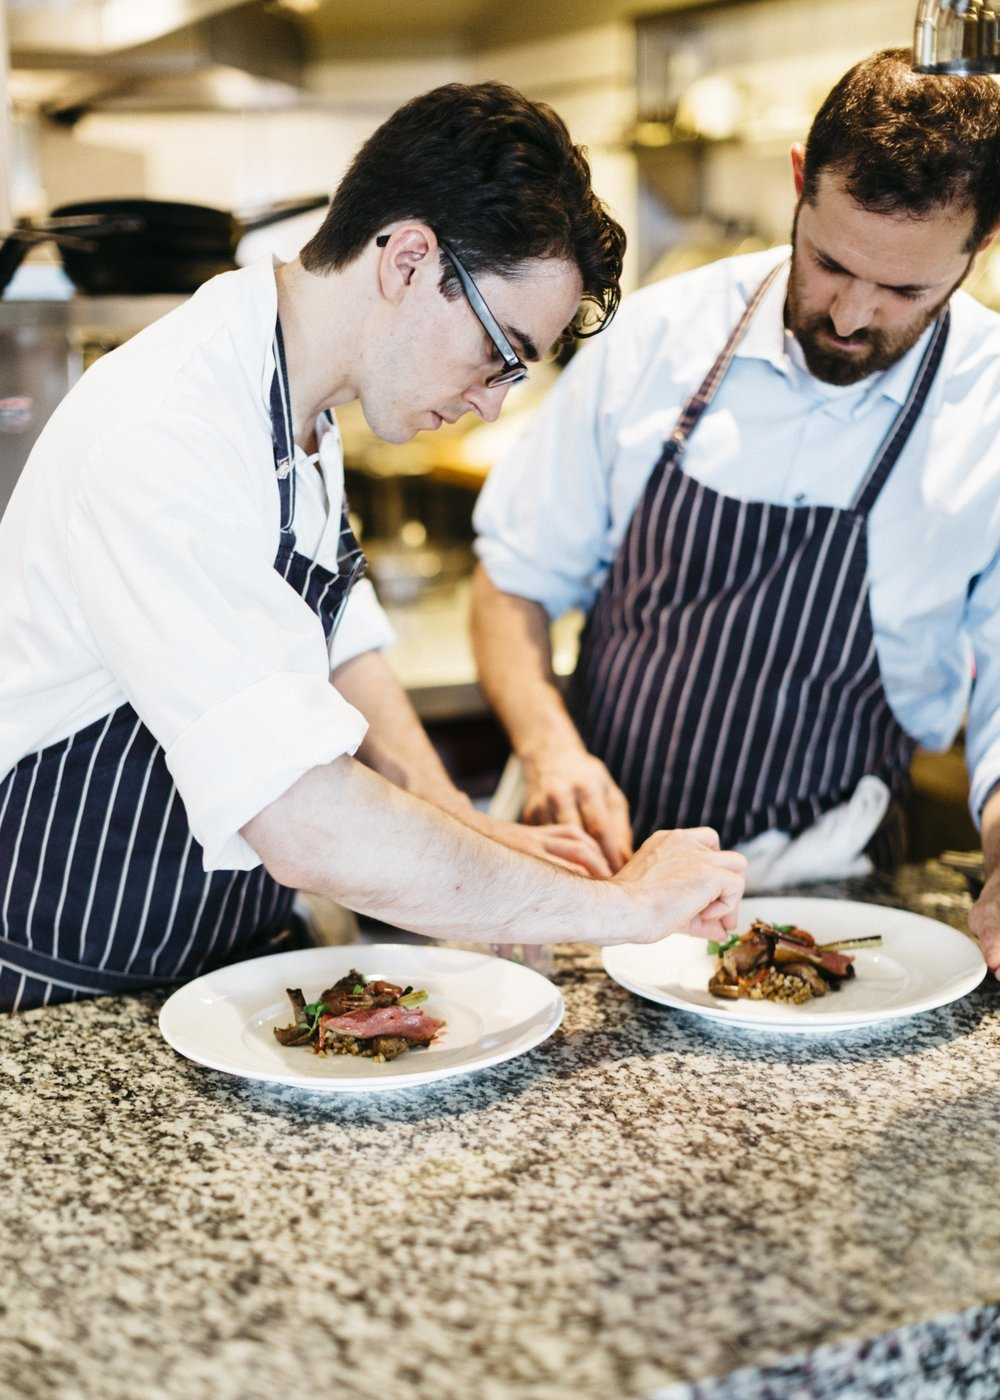 Michael Piazza Photography Chefs Chris McMullan, left, and Tony Maws plate a meal at Craigie on Main.